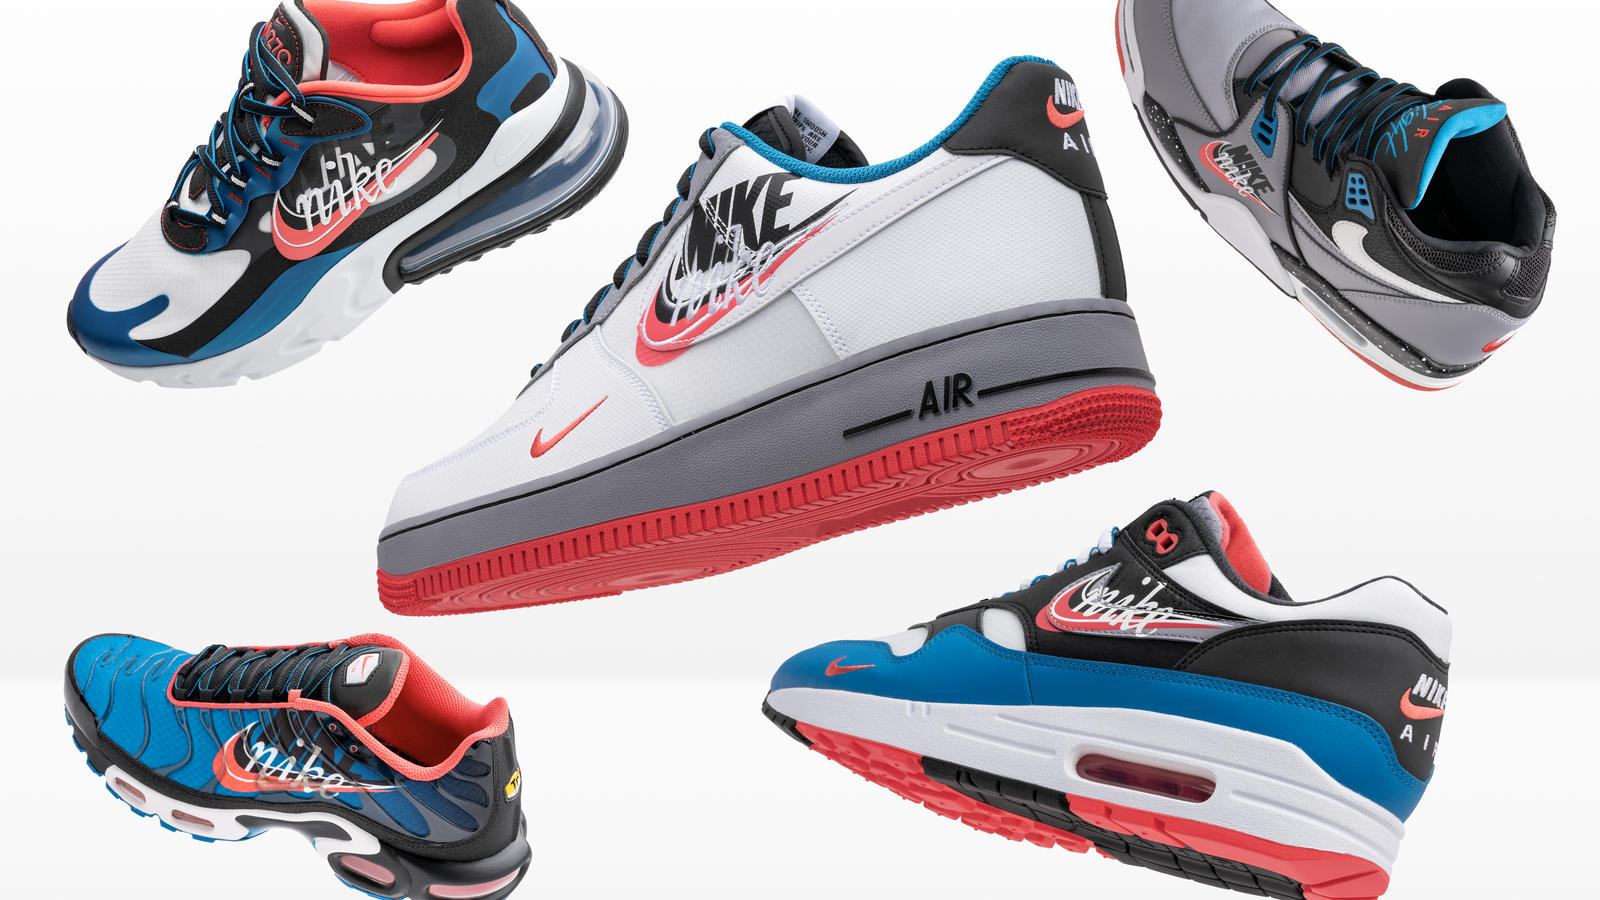 Nike and Foot Locker Inc. Evolution of Swoosh Chapter 2 Flight 89, Air Max 1, Air Max Plus, Air Max 200, Air Force 1, React 270, Air Max TN 3